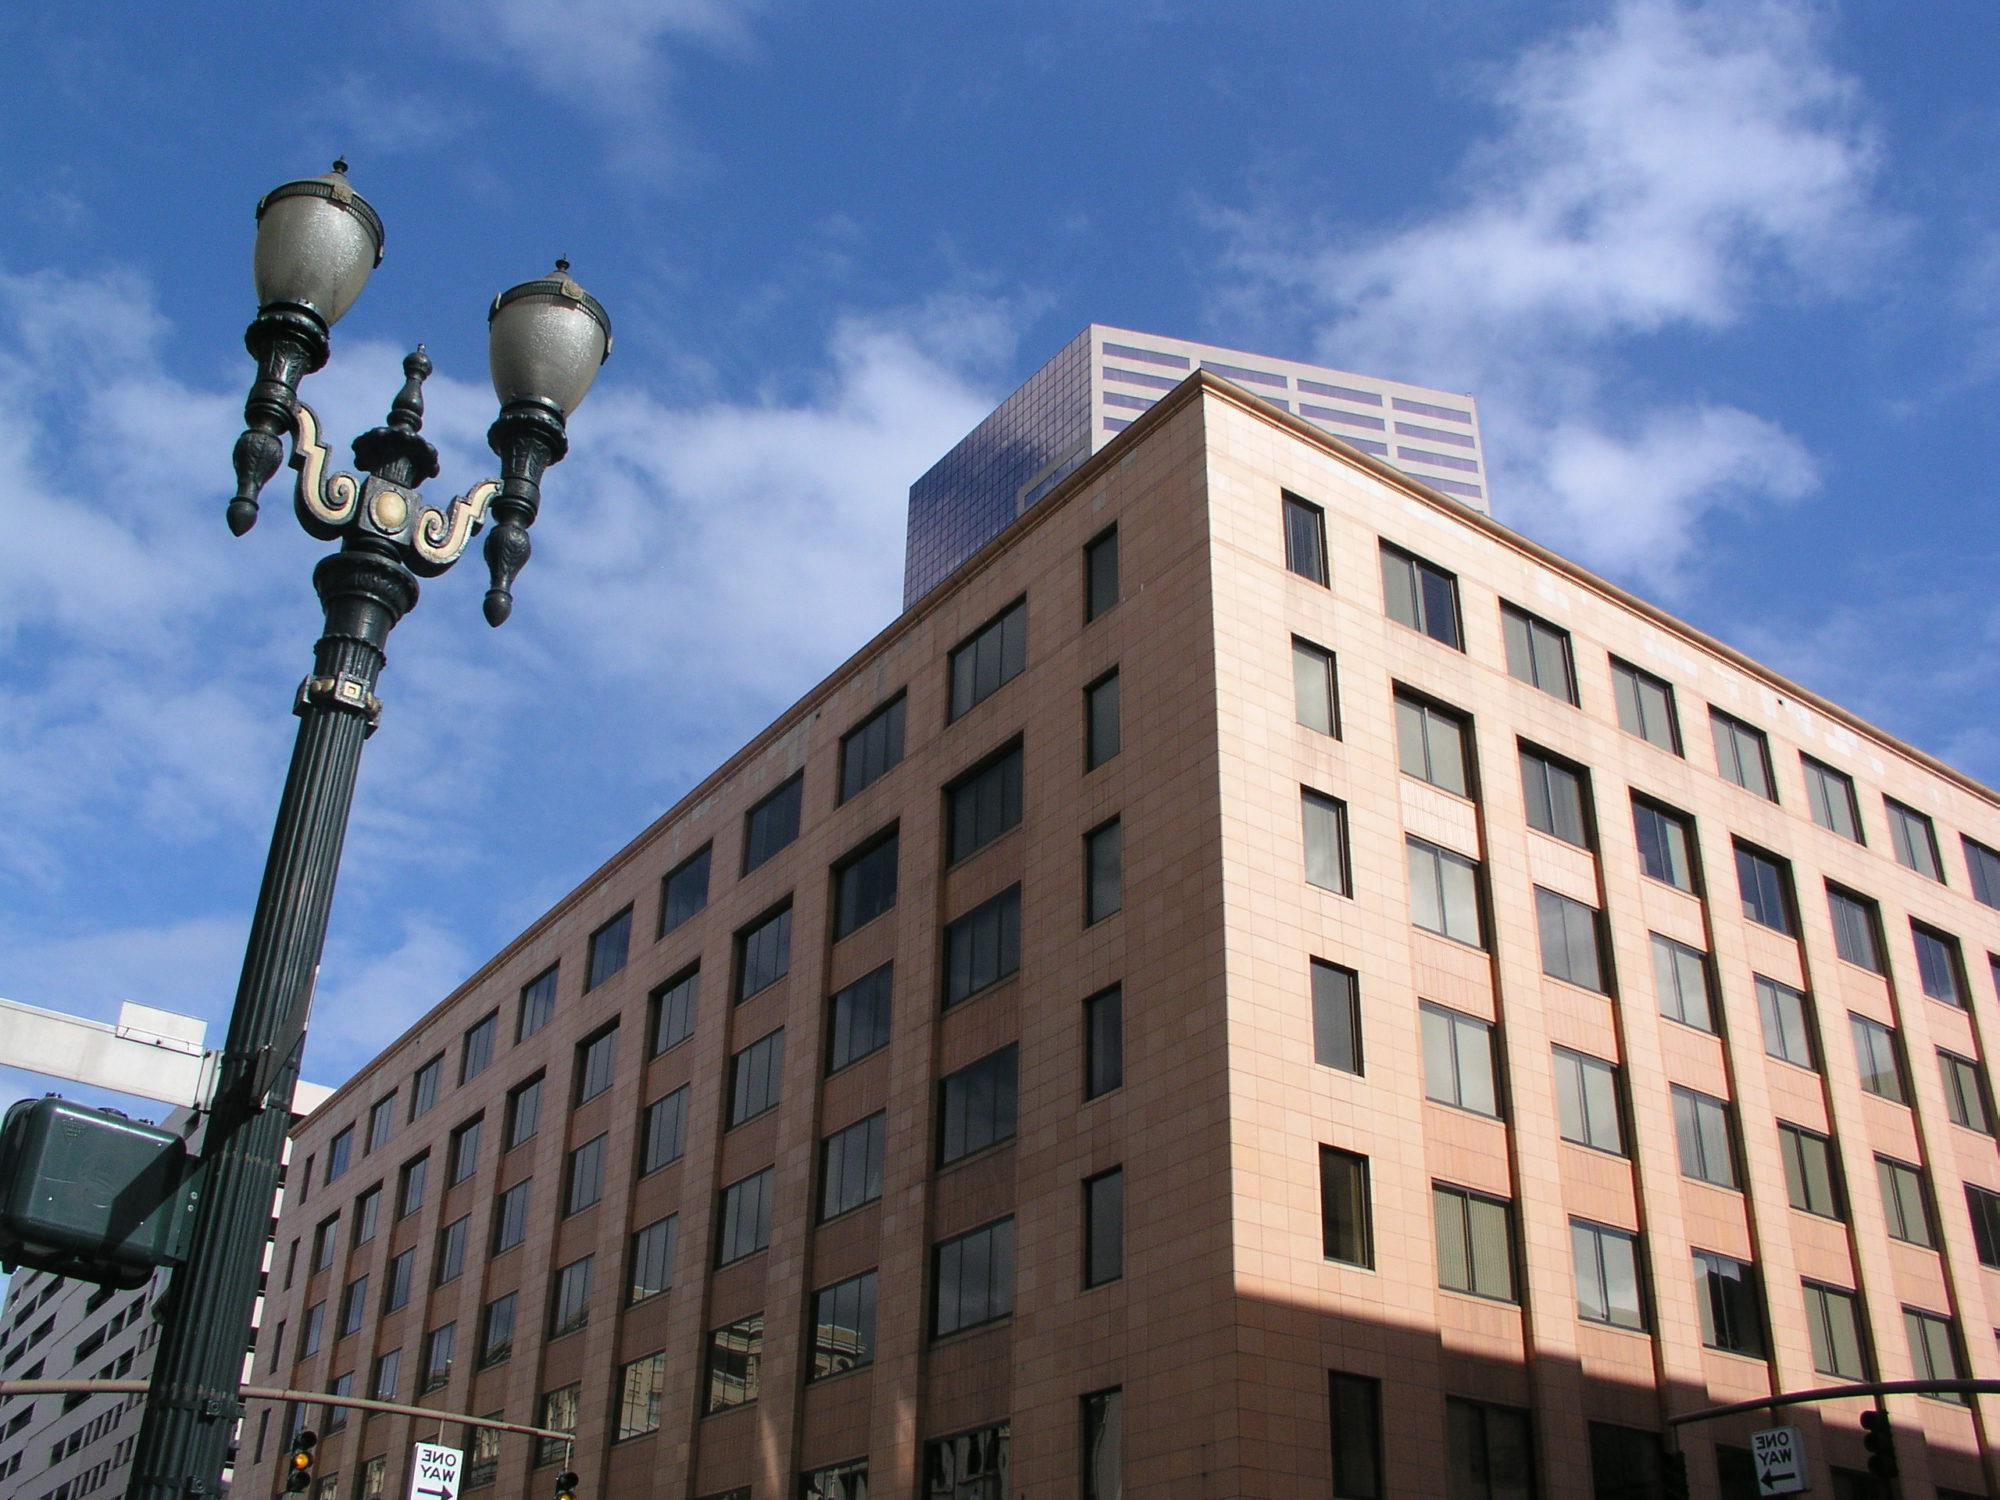 The Lincoln Building, a seven-story office building in downtown Portland, Ore. The US Bancorp Tower is visible behind it.